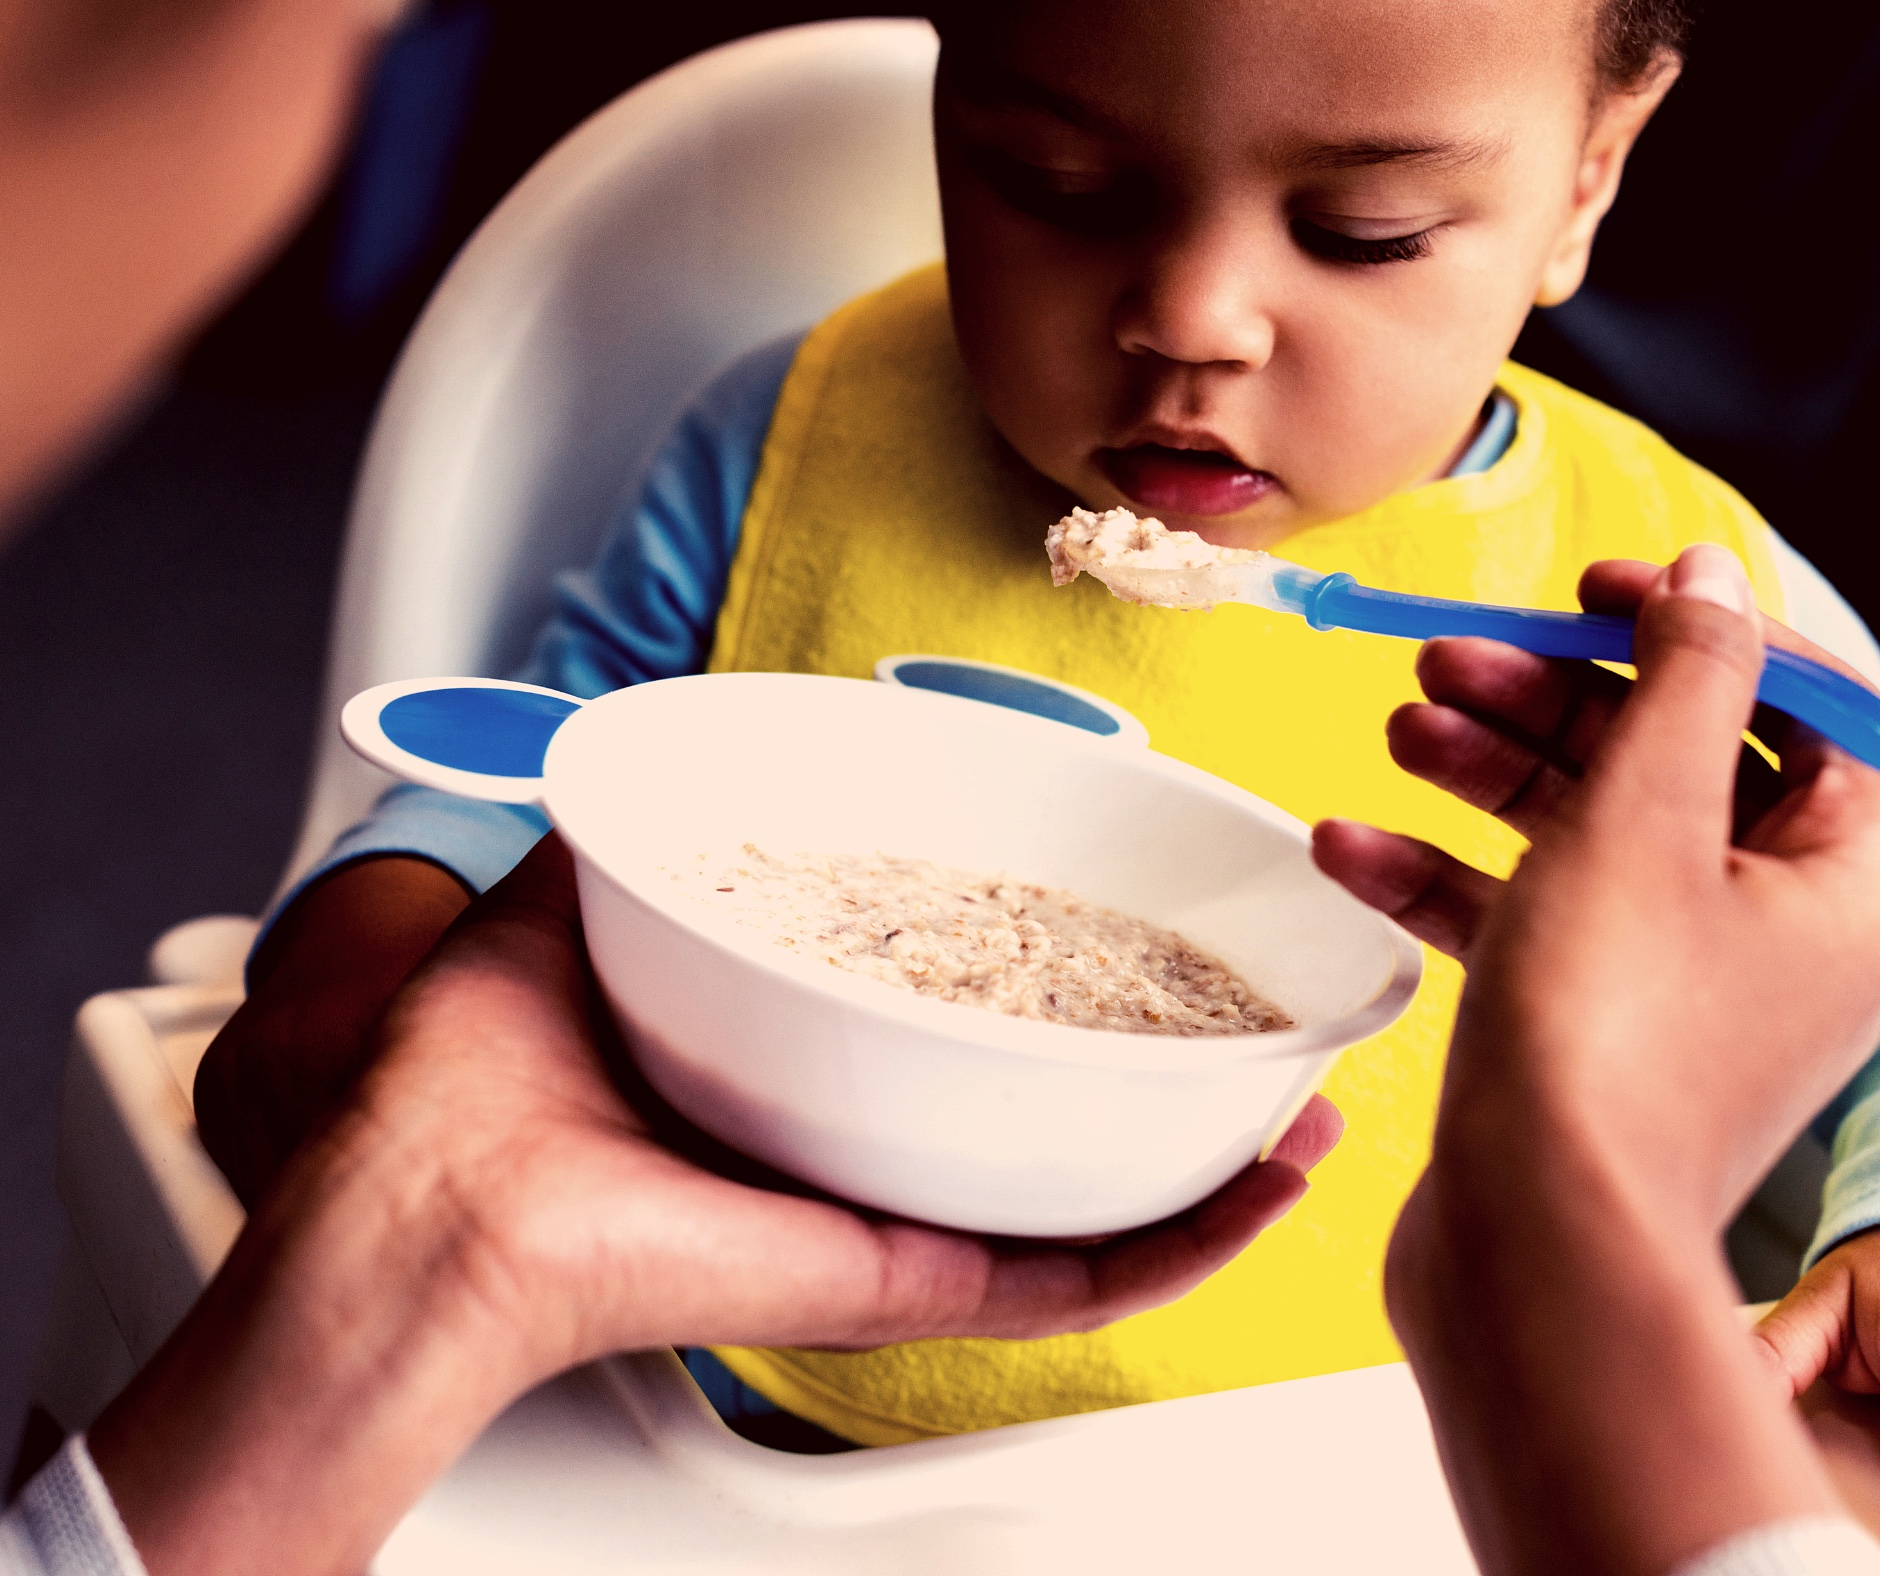 Photo of baby being spoon fed by female caregiver out of a bowl